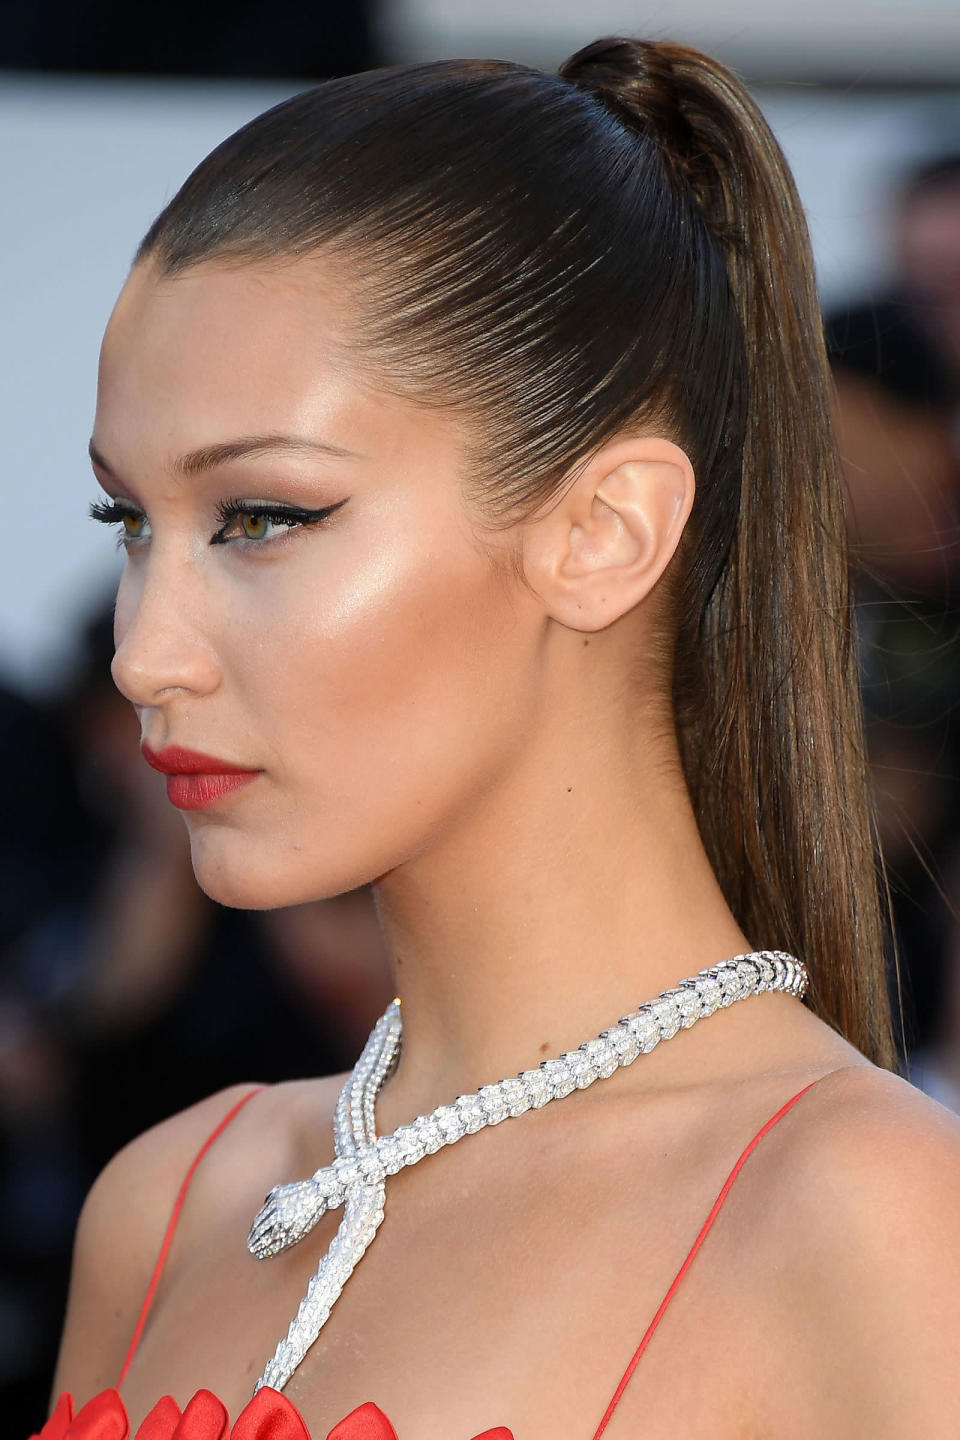 <p>The Dior beauty ambassador made a statement with her make-up, combining graphic liquid liner and cherry red lipstick.</p>